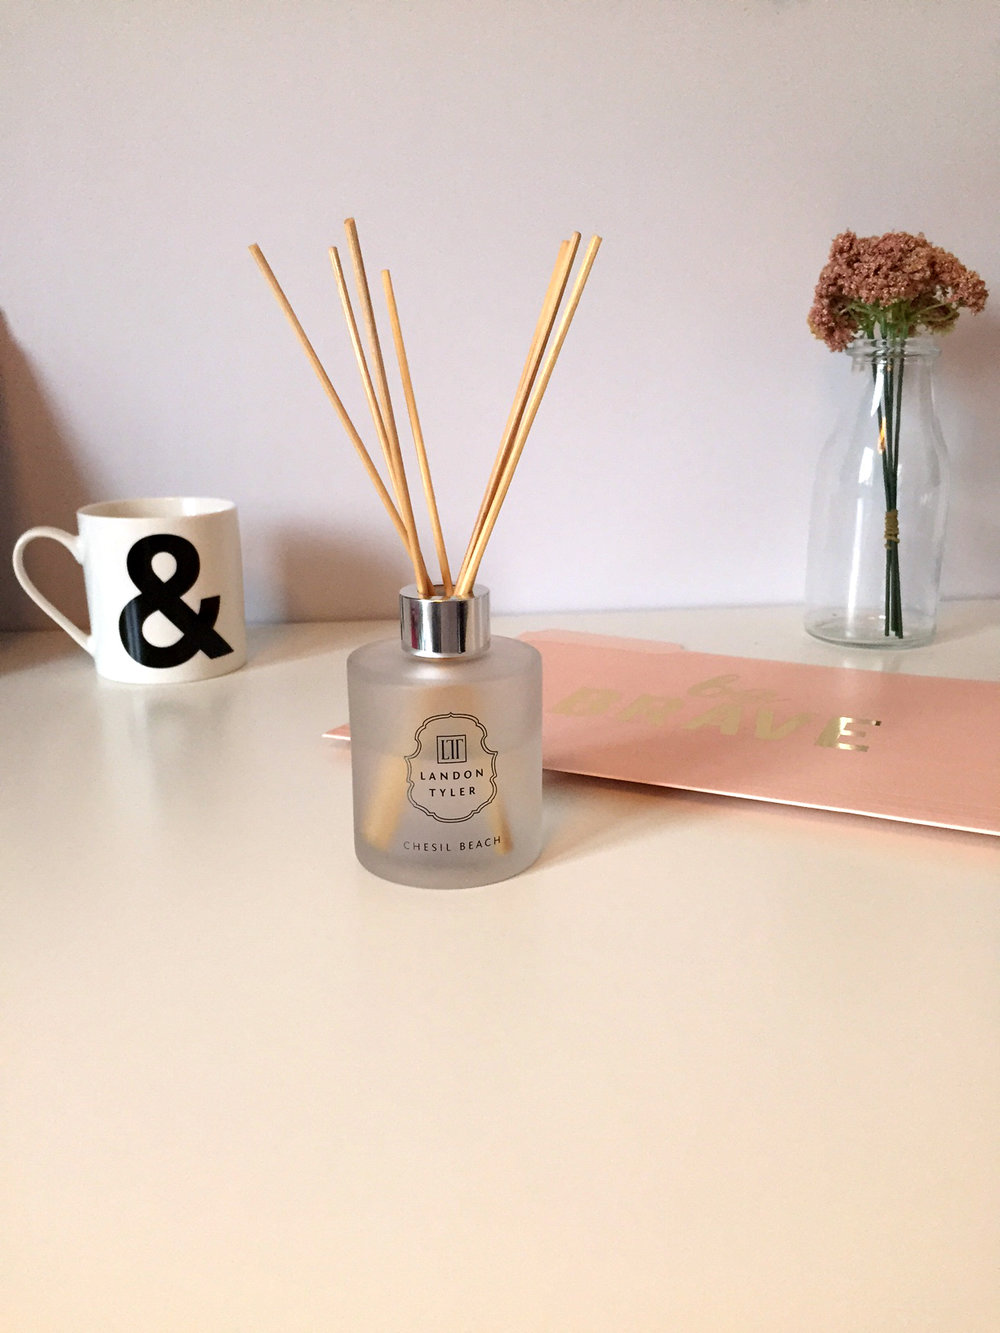 chesil beach landon tyler candle diffuser